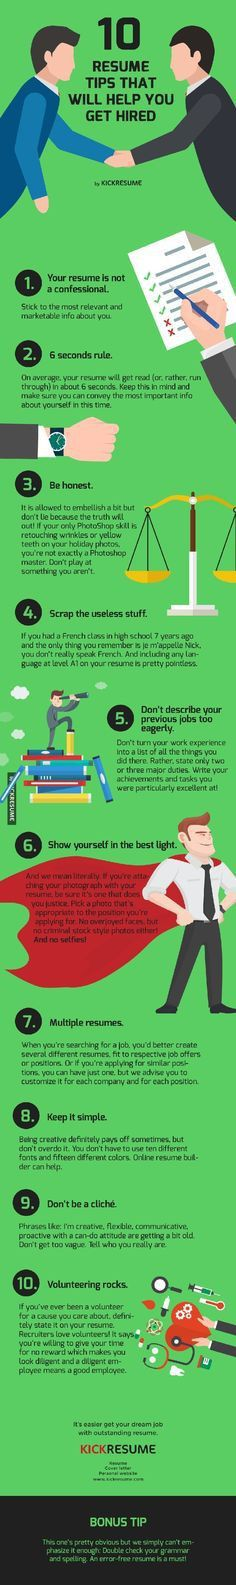 Career Perfect Resume Example Executive Or Ceo Careerperfectcom - career perfect resume reviews